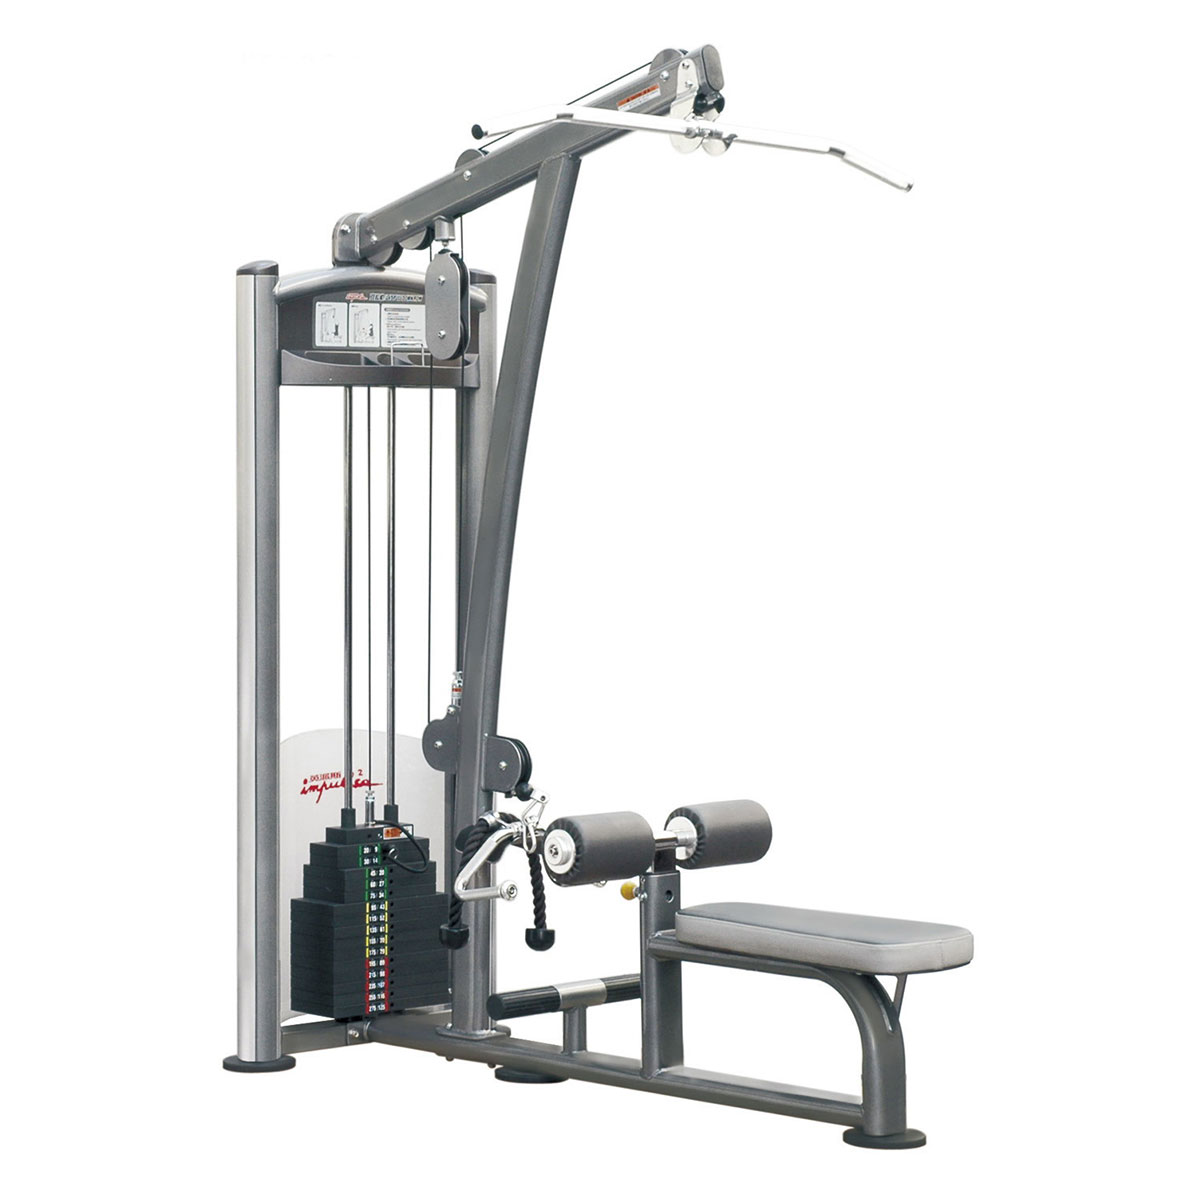 Lat Pulldown / Low Row - 200 lbs